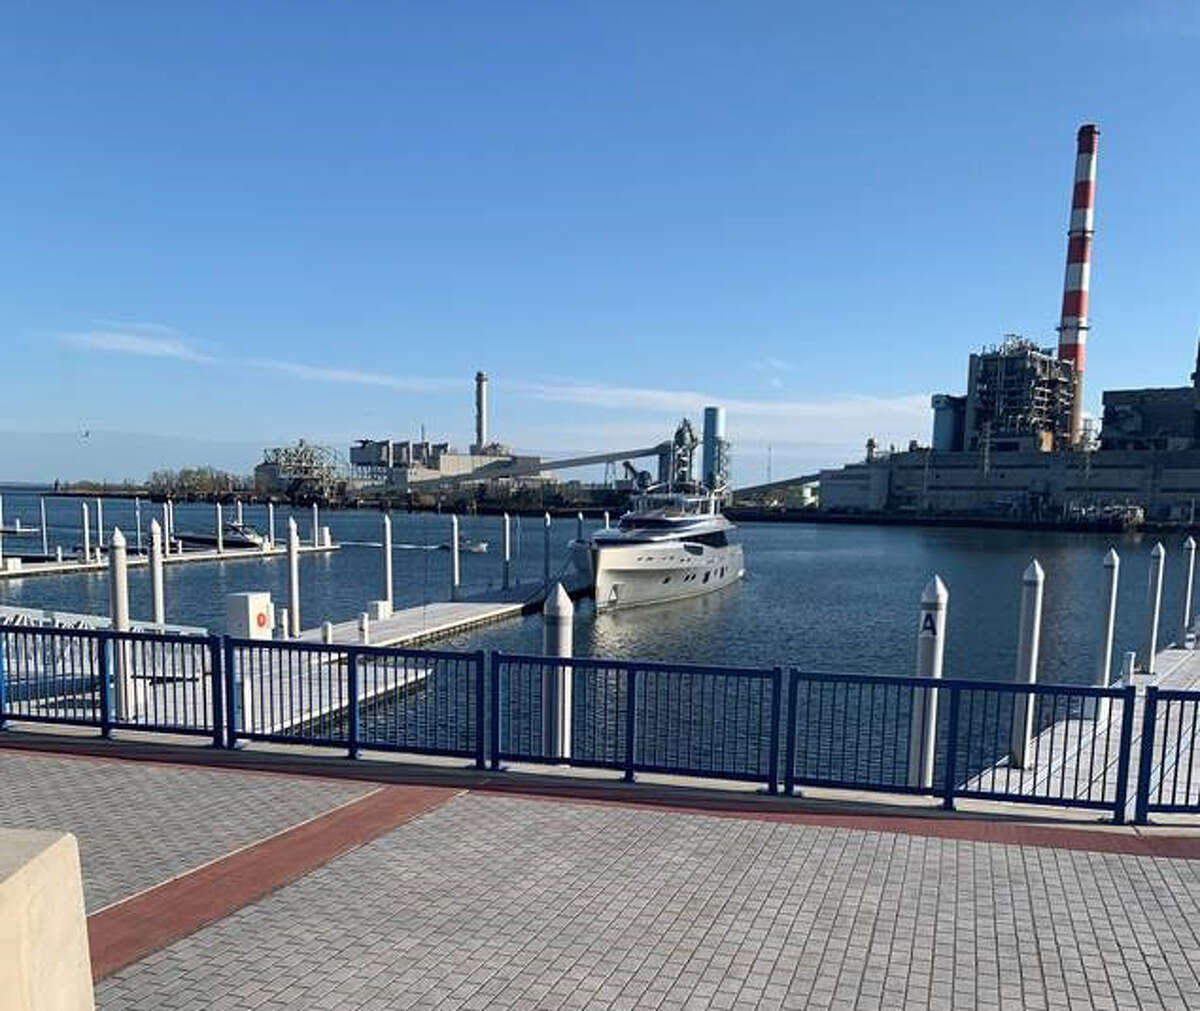 The Lady May was docked at Steelpointe Marina in Bridgeport, Conn. on May 5, 2020.